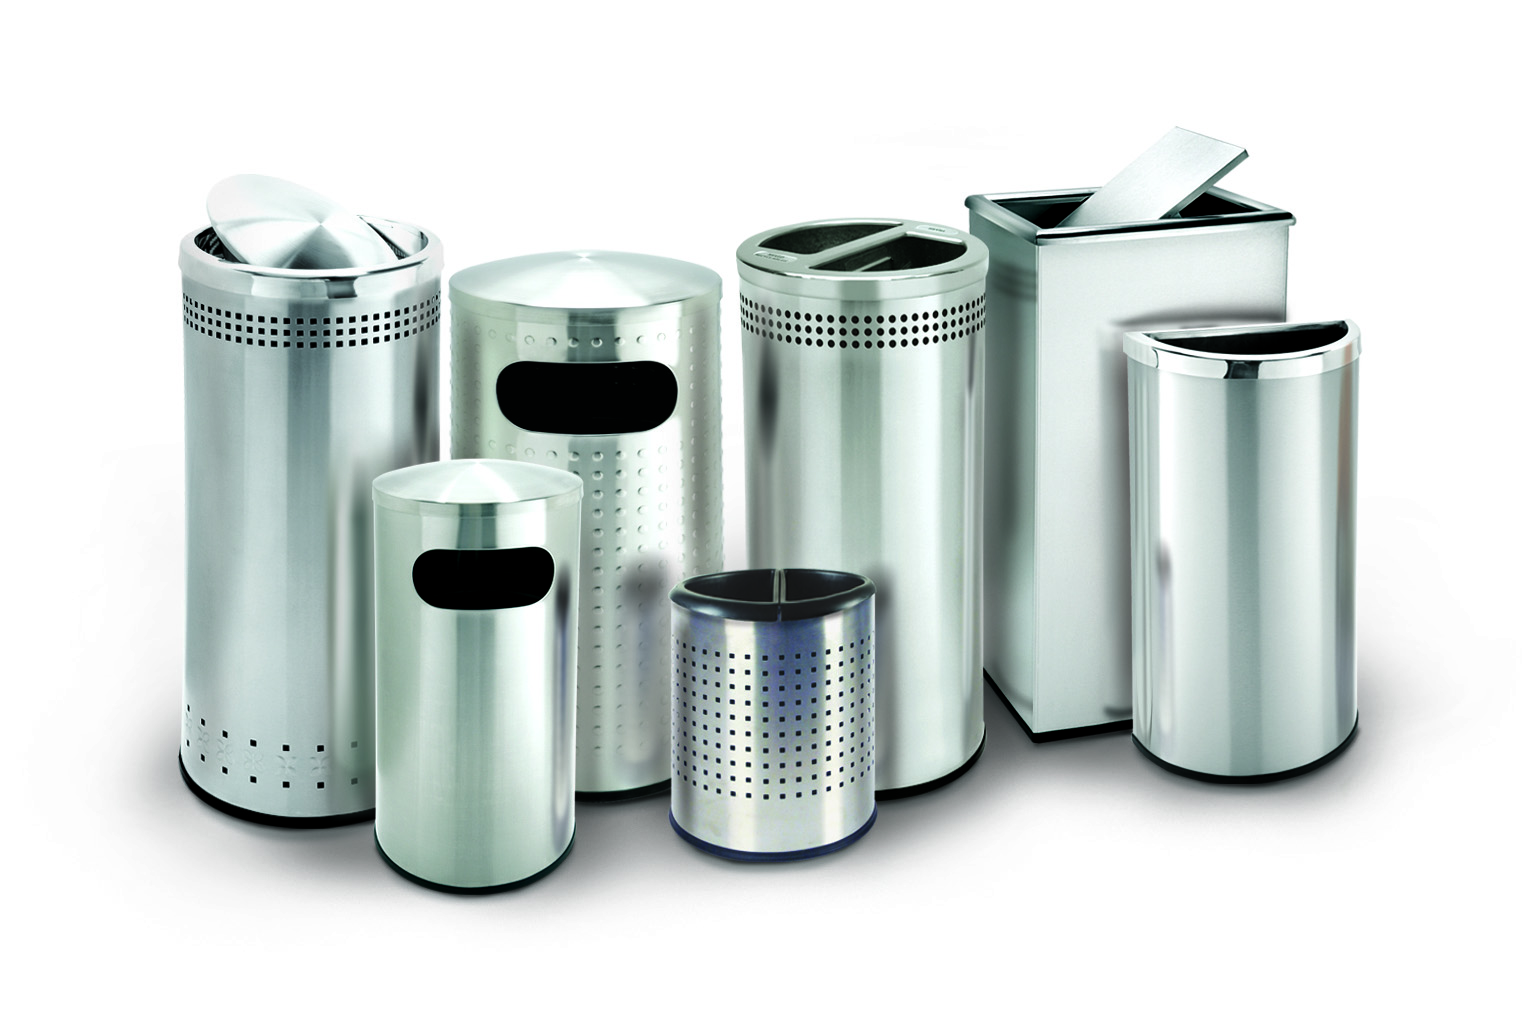 stainless-steel-precision-group.jpg